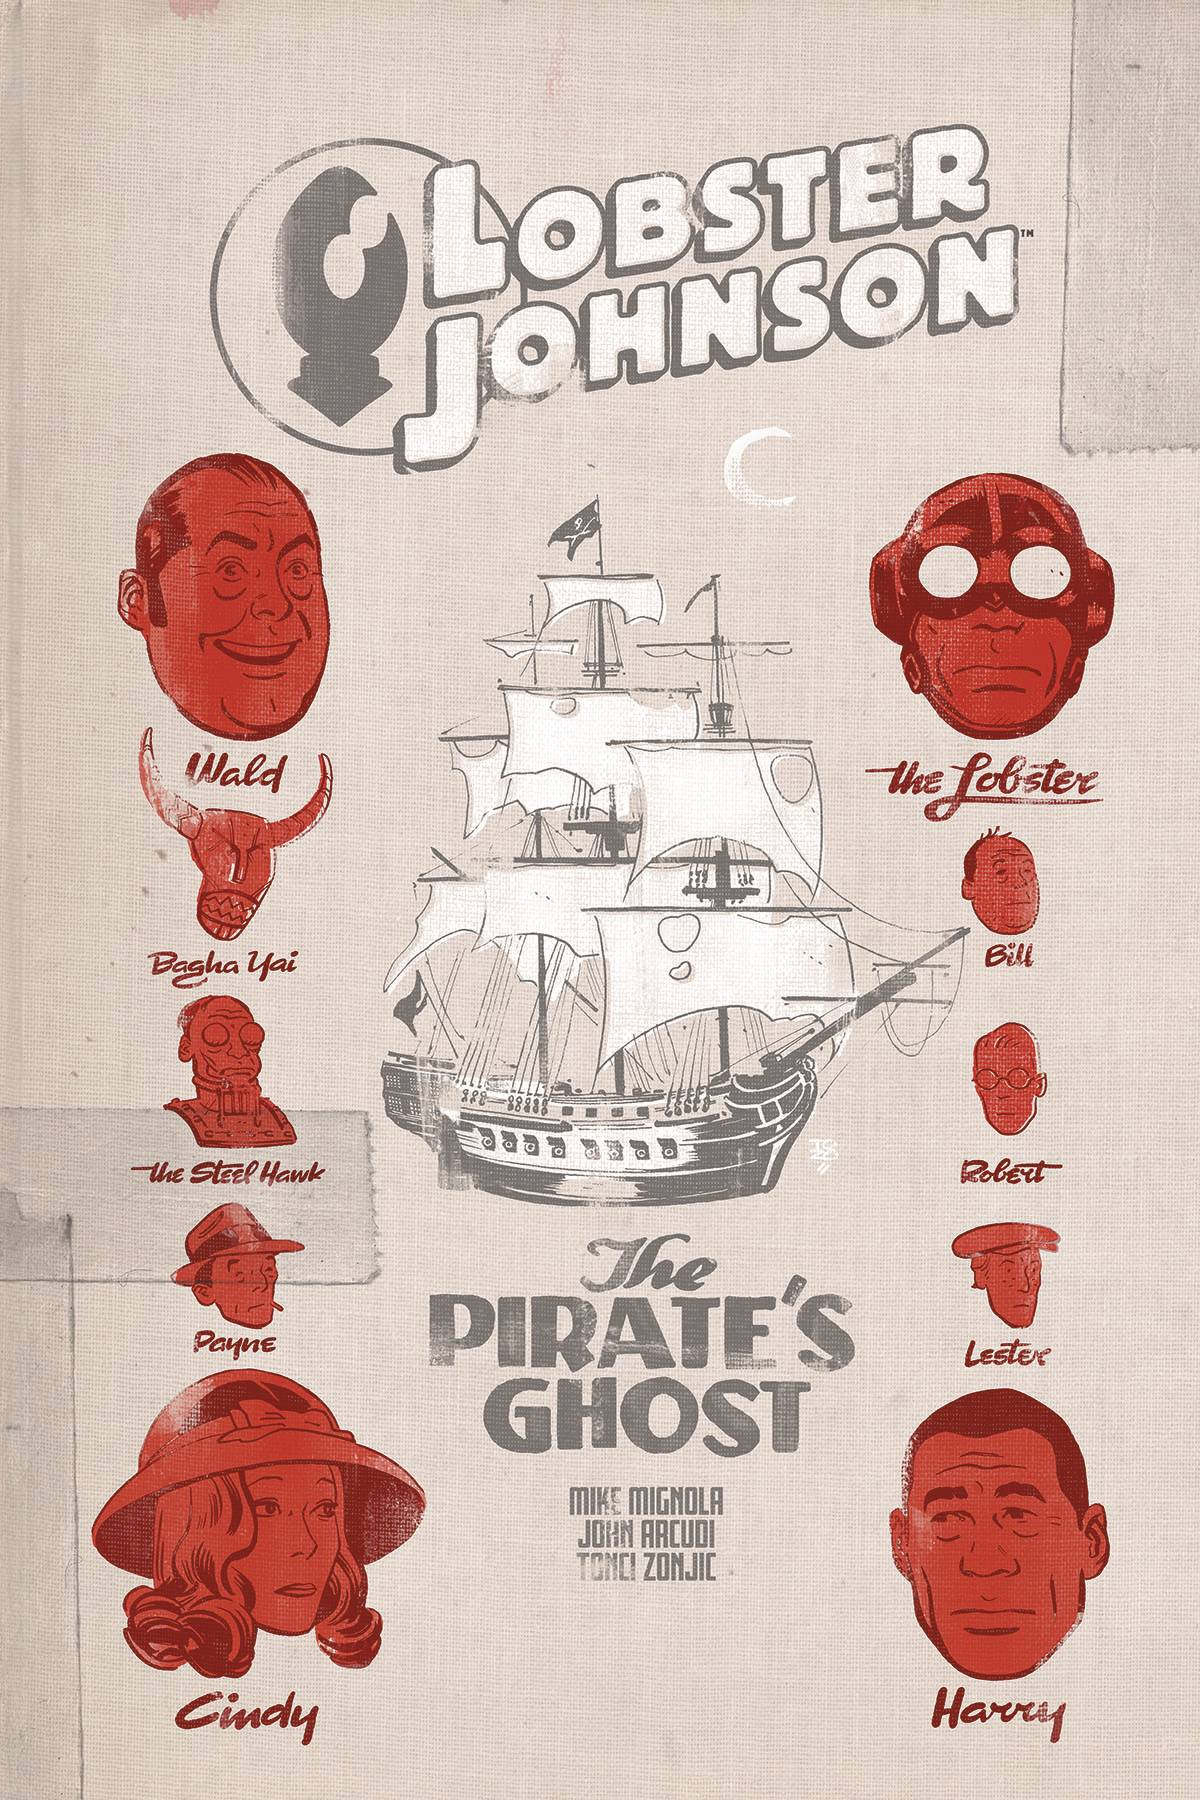 LOBSTER JOHNSON PIRATES GHOST #1